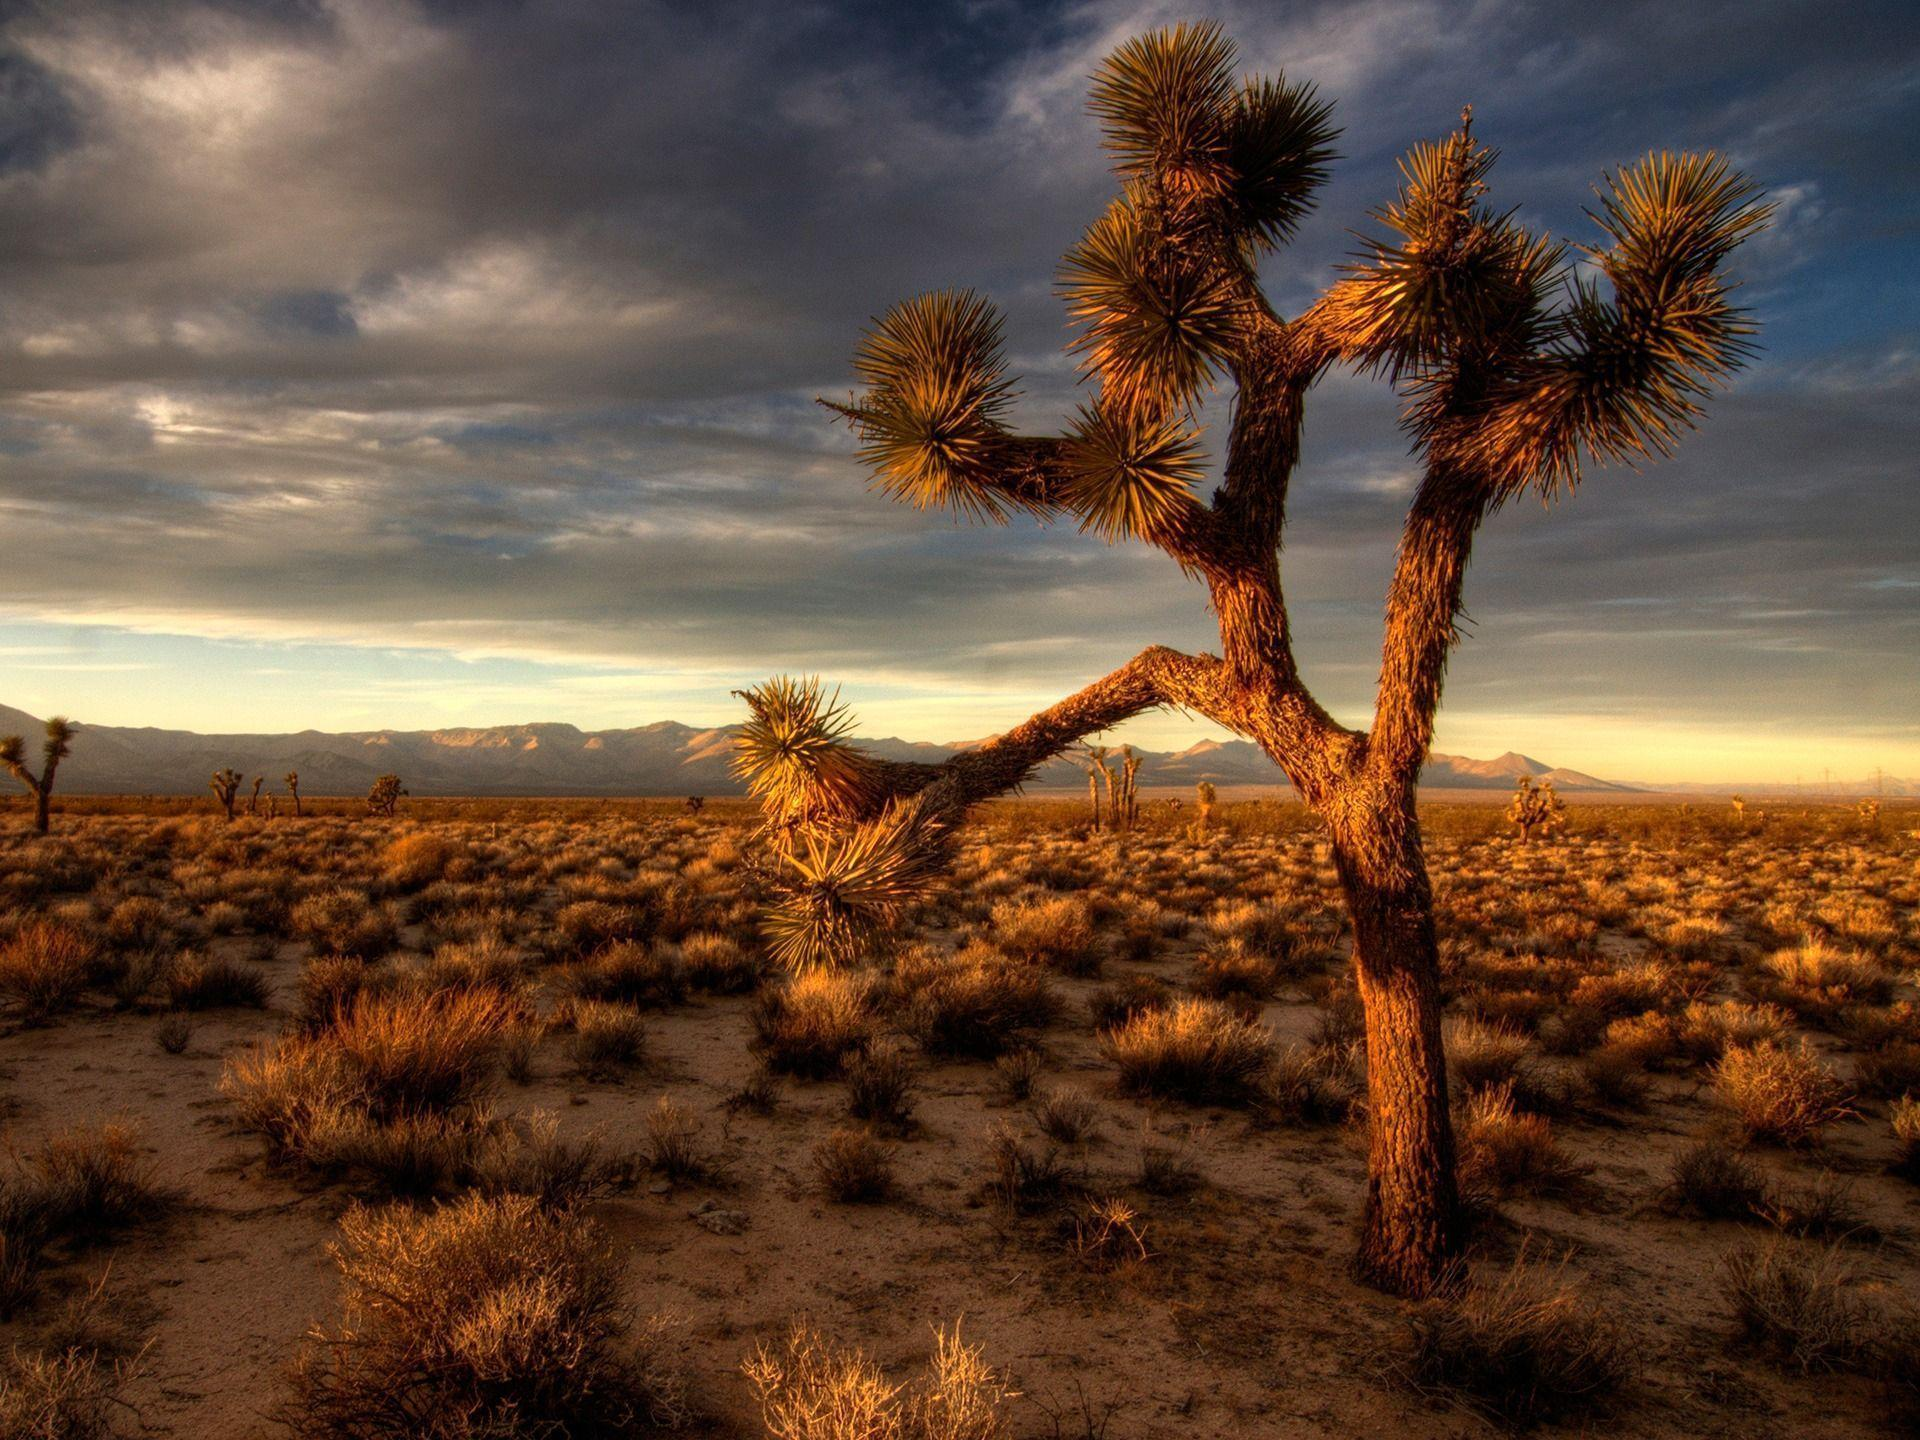 joshua tree wallpapers - wallpaper cave